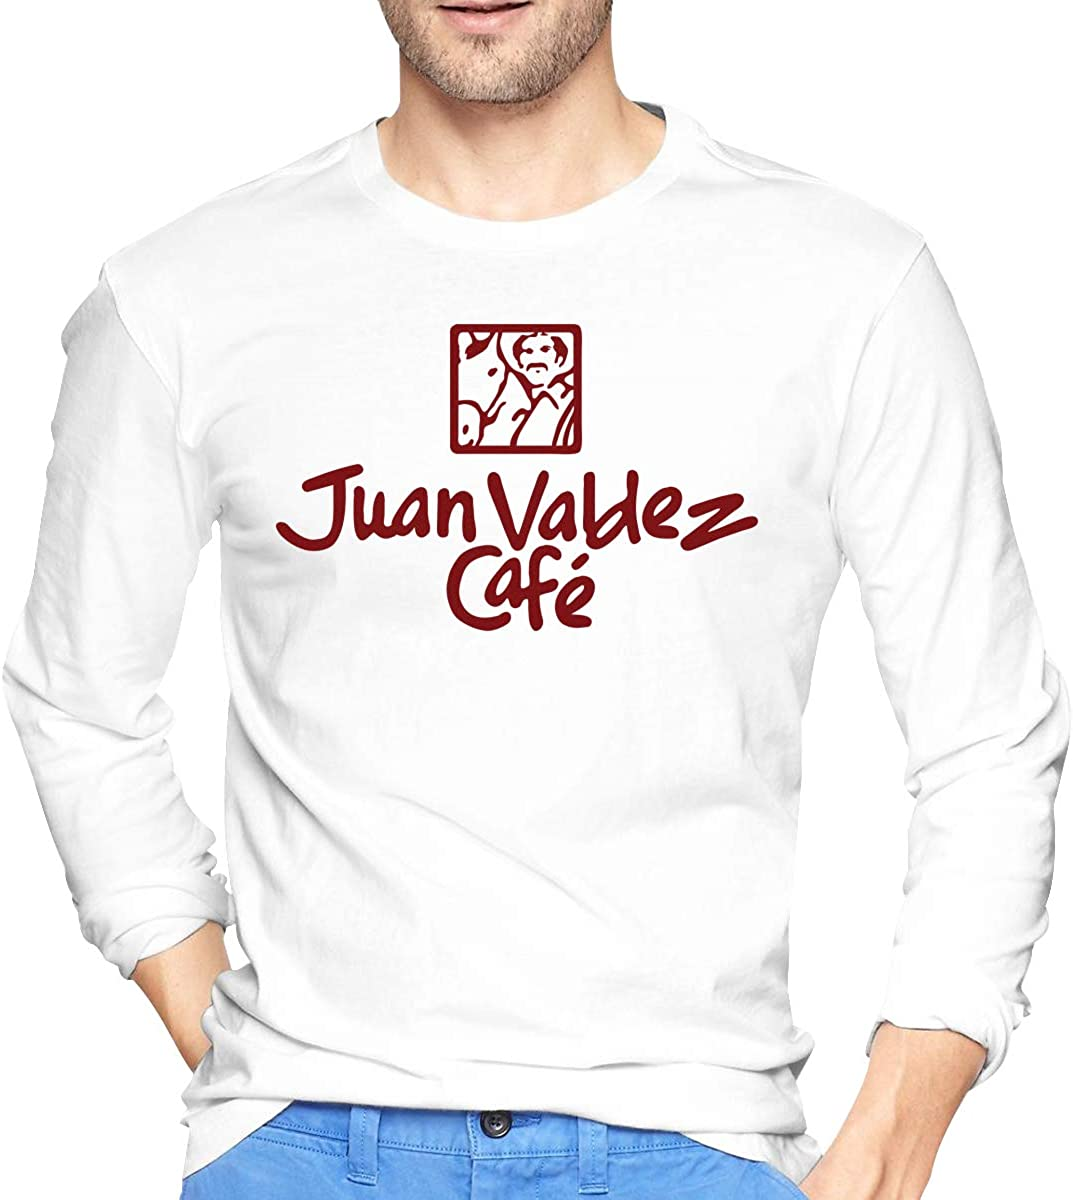 Mens Long Sleeve T-Shirts Juan Valdez Cafe Printed Casual Street Wear Trendy Tee Shirt